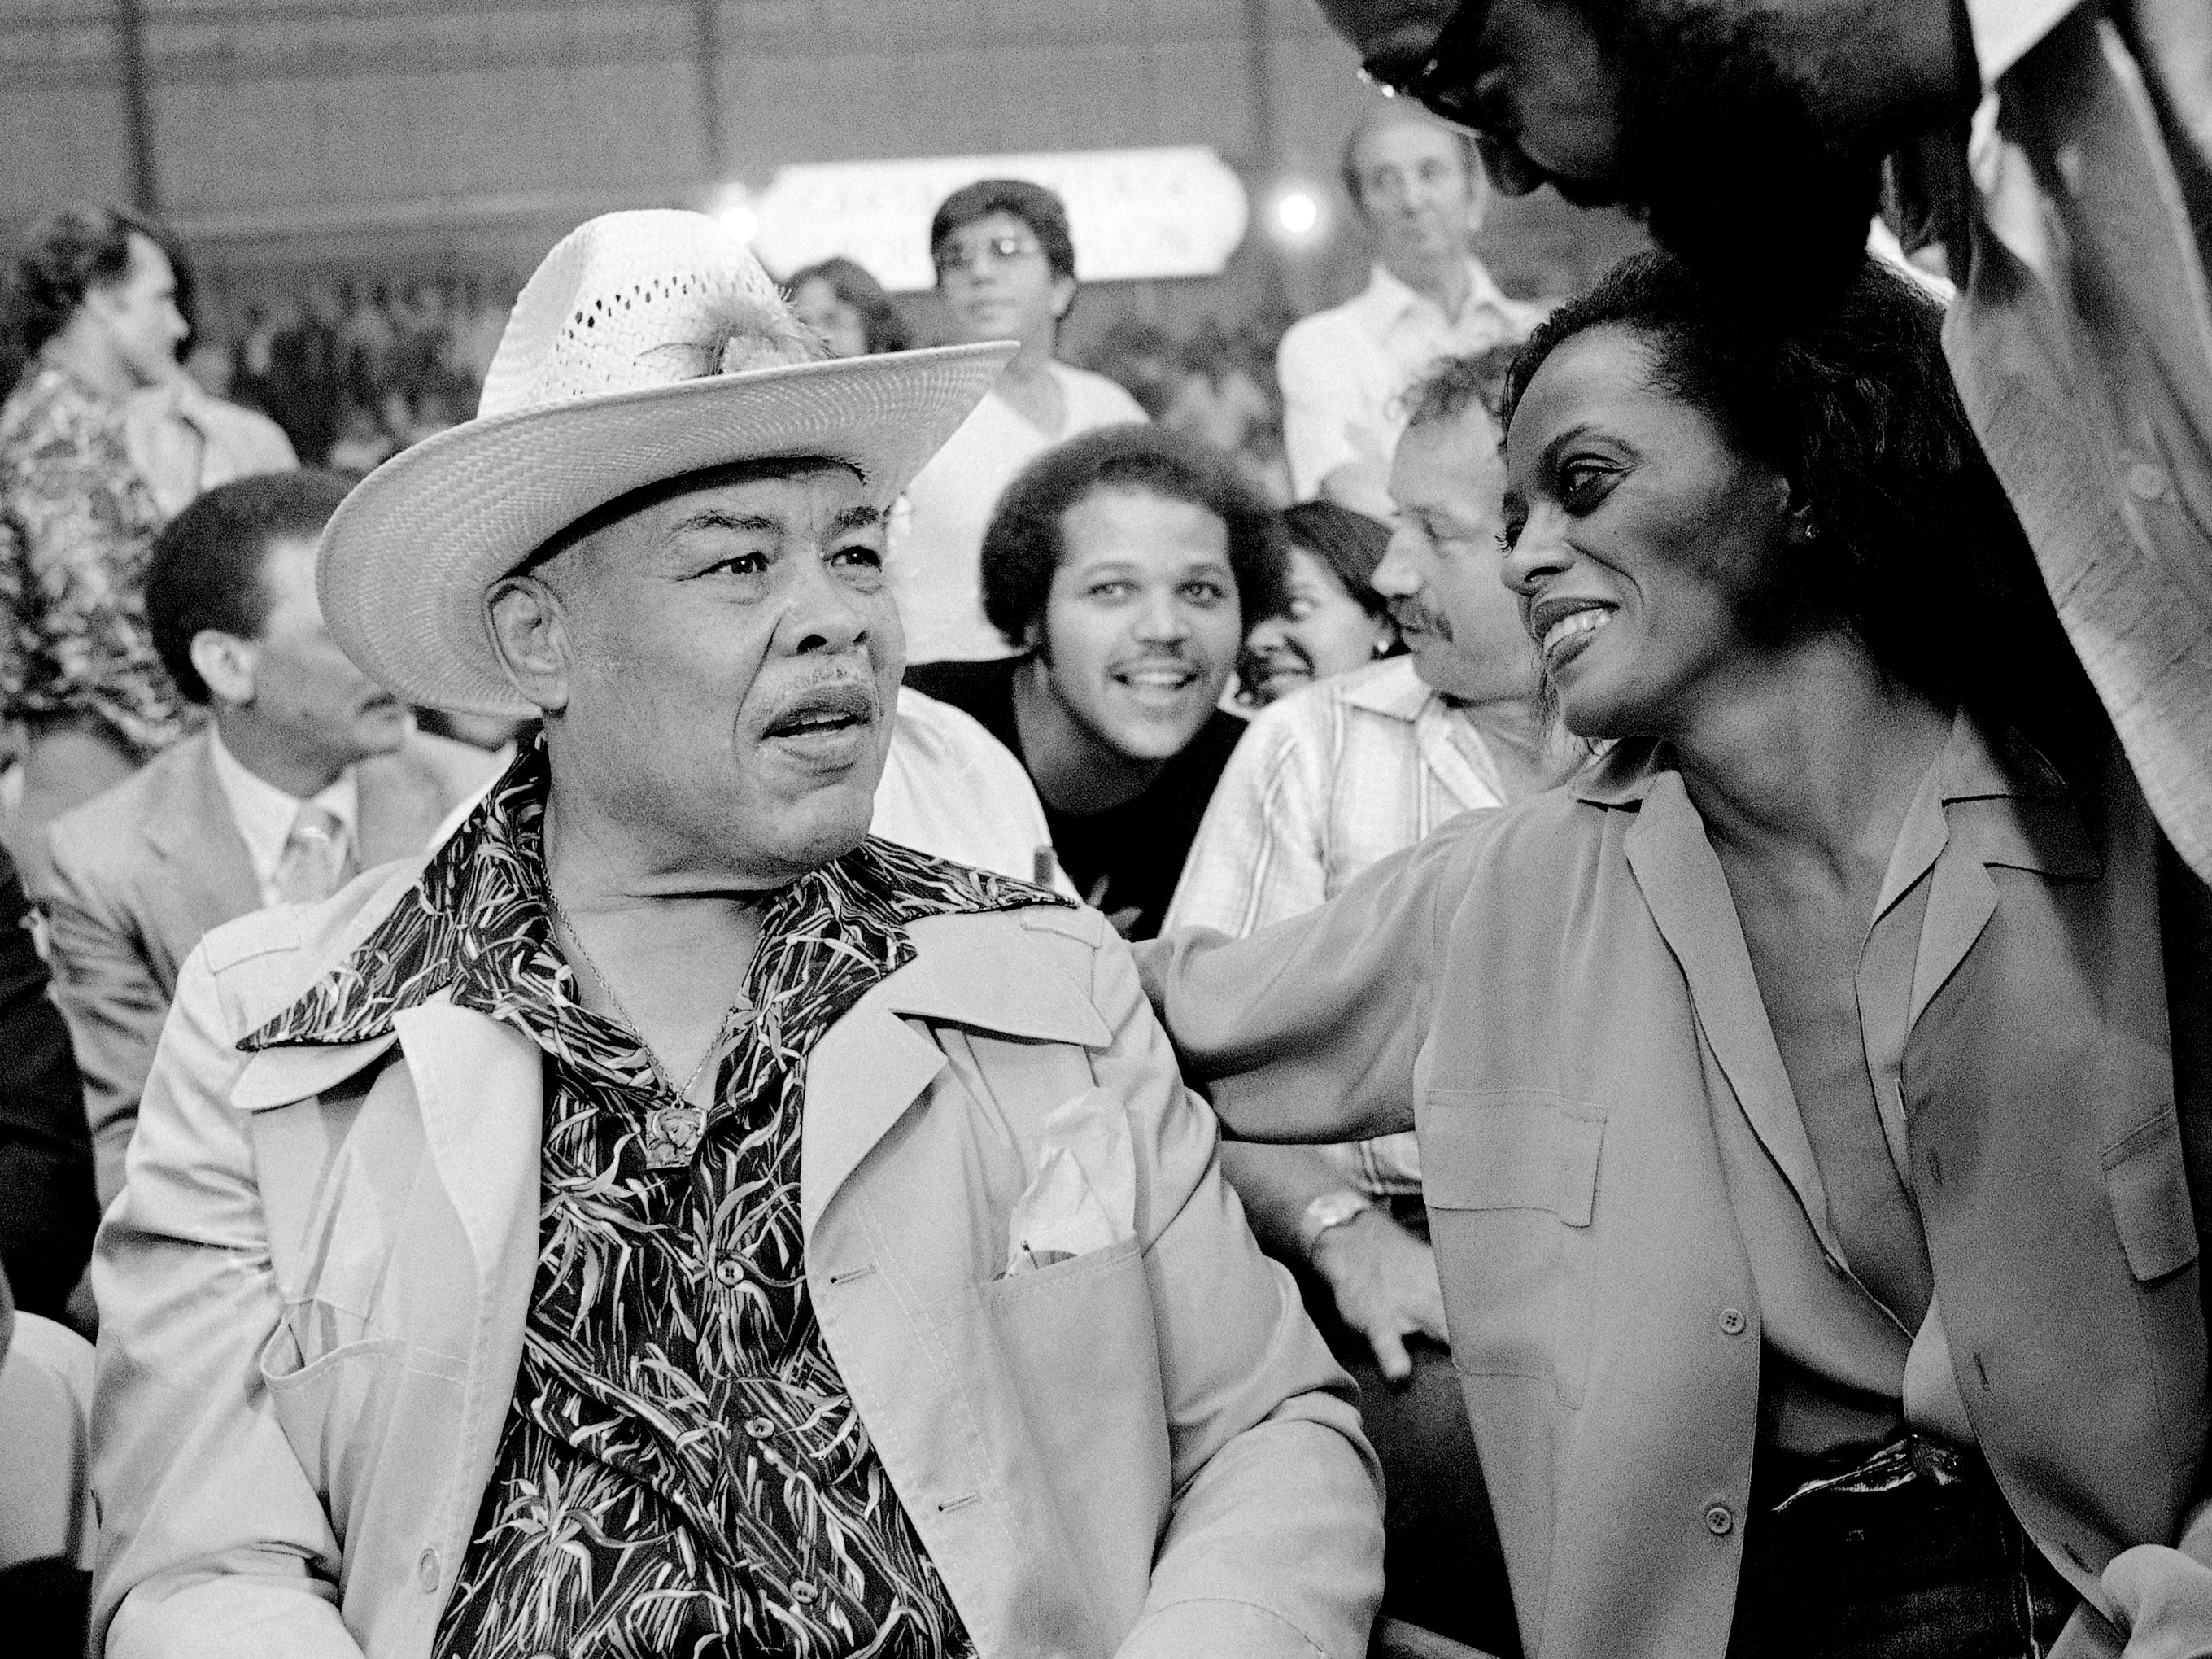 Two Detroit icons, former heavyweight boxing champion Joe Louis and Diana Ross, talk at Caesars Palace in Las Vegas on Sept. 28, 1979, where both were on hand to watch the Larry Holmes-Earnie Shavers heavyweight championship fight.